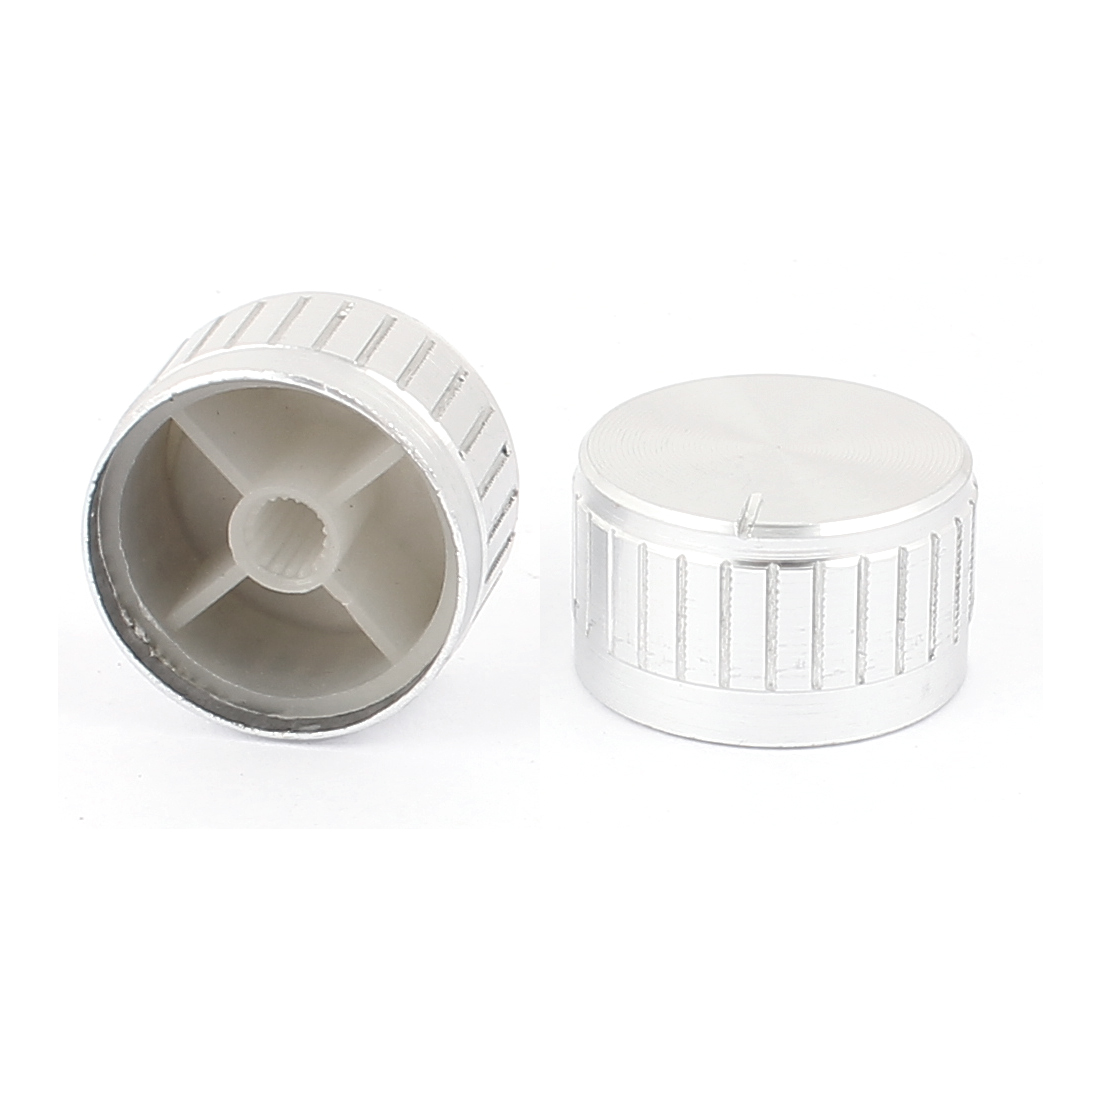 2 Pcs 30mm x 6mm Aluminium Alloy Potentiometer Control Switch Volume Cap Knurled Button Silver Tone